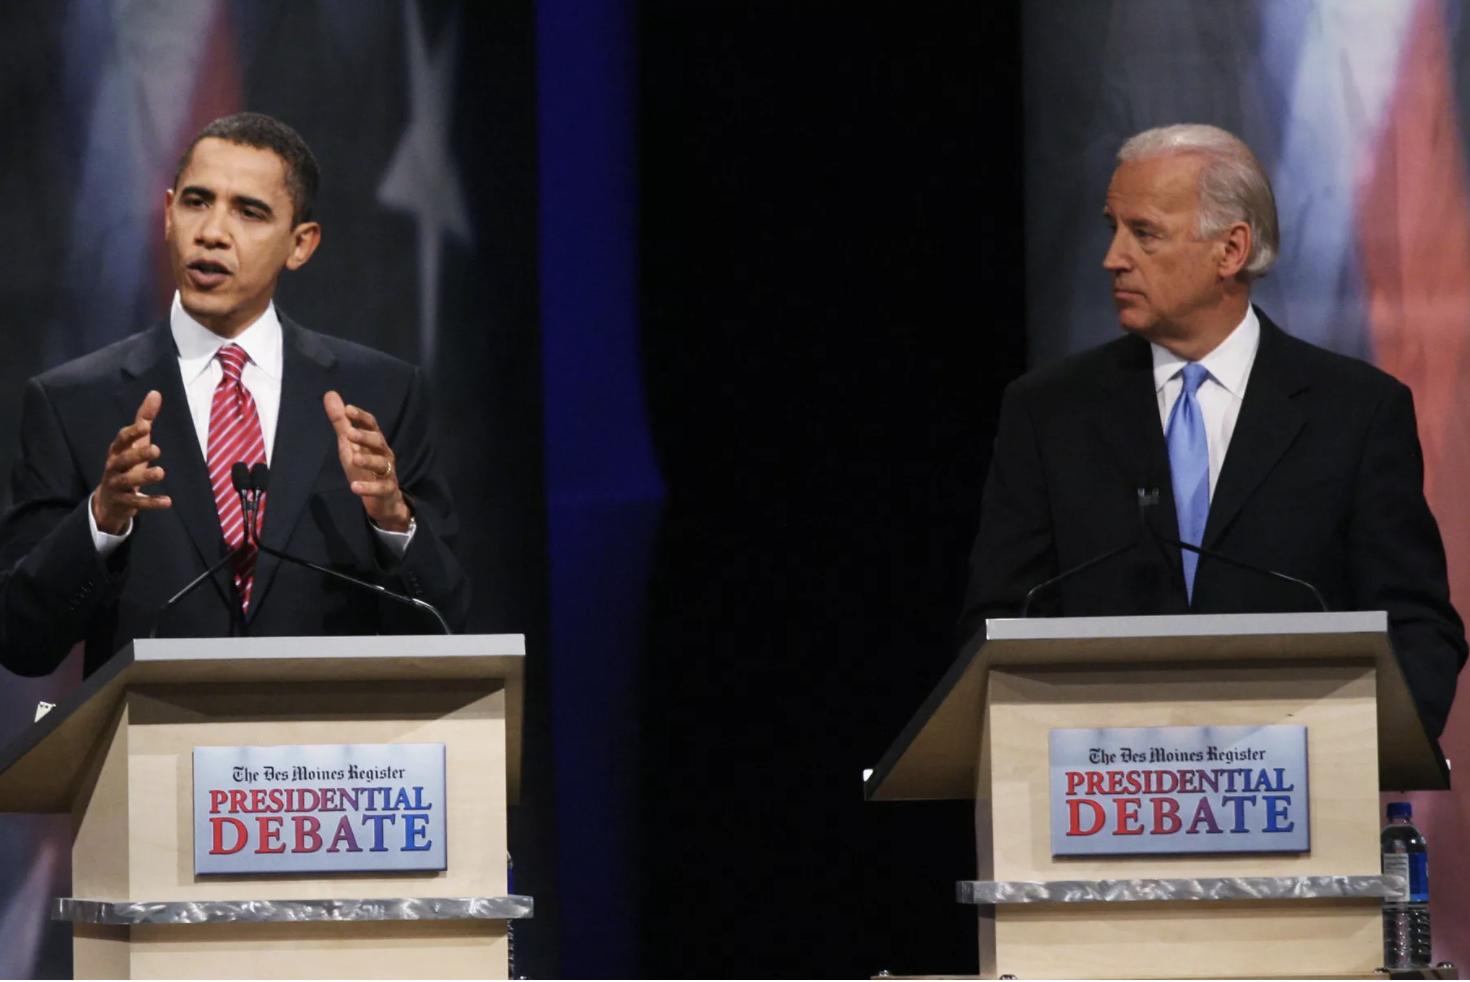 Biden with Obama at the Presidential Debate (2007)